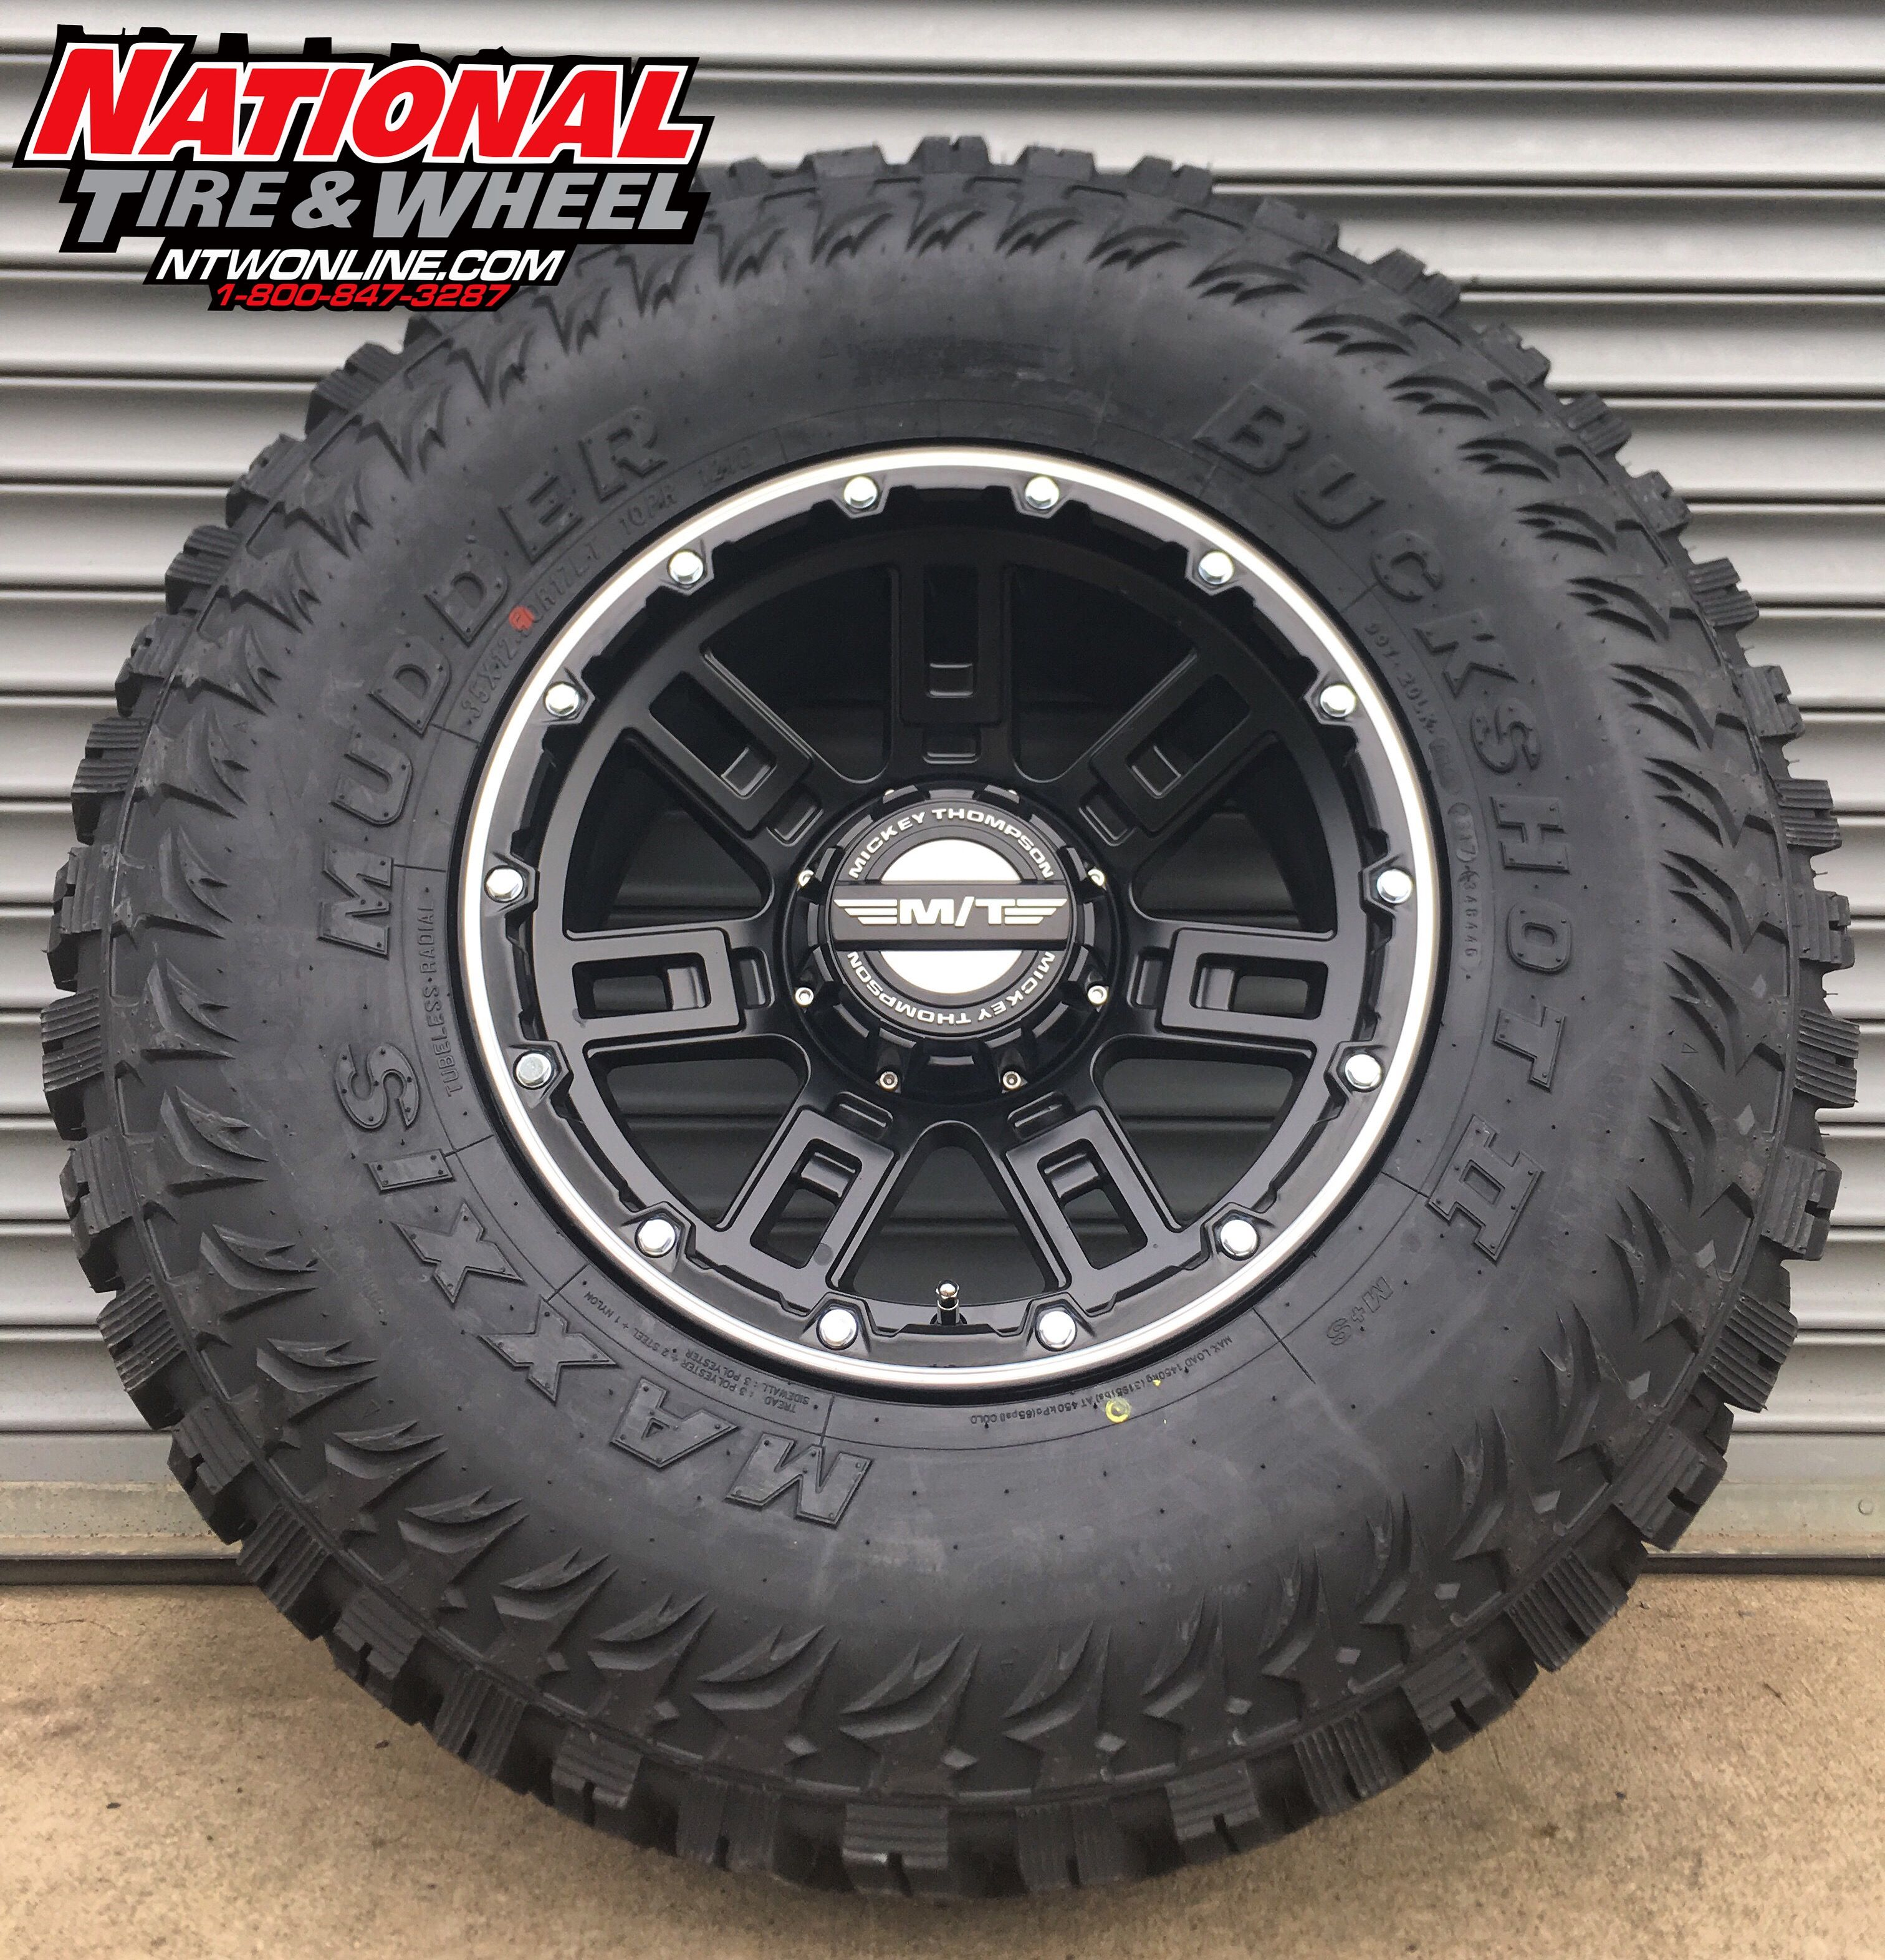 Jeep Wrangler Rims And Tire Packages >> Pin on Wheel And Tire Packages